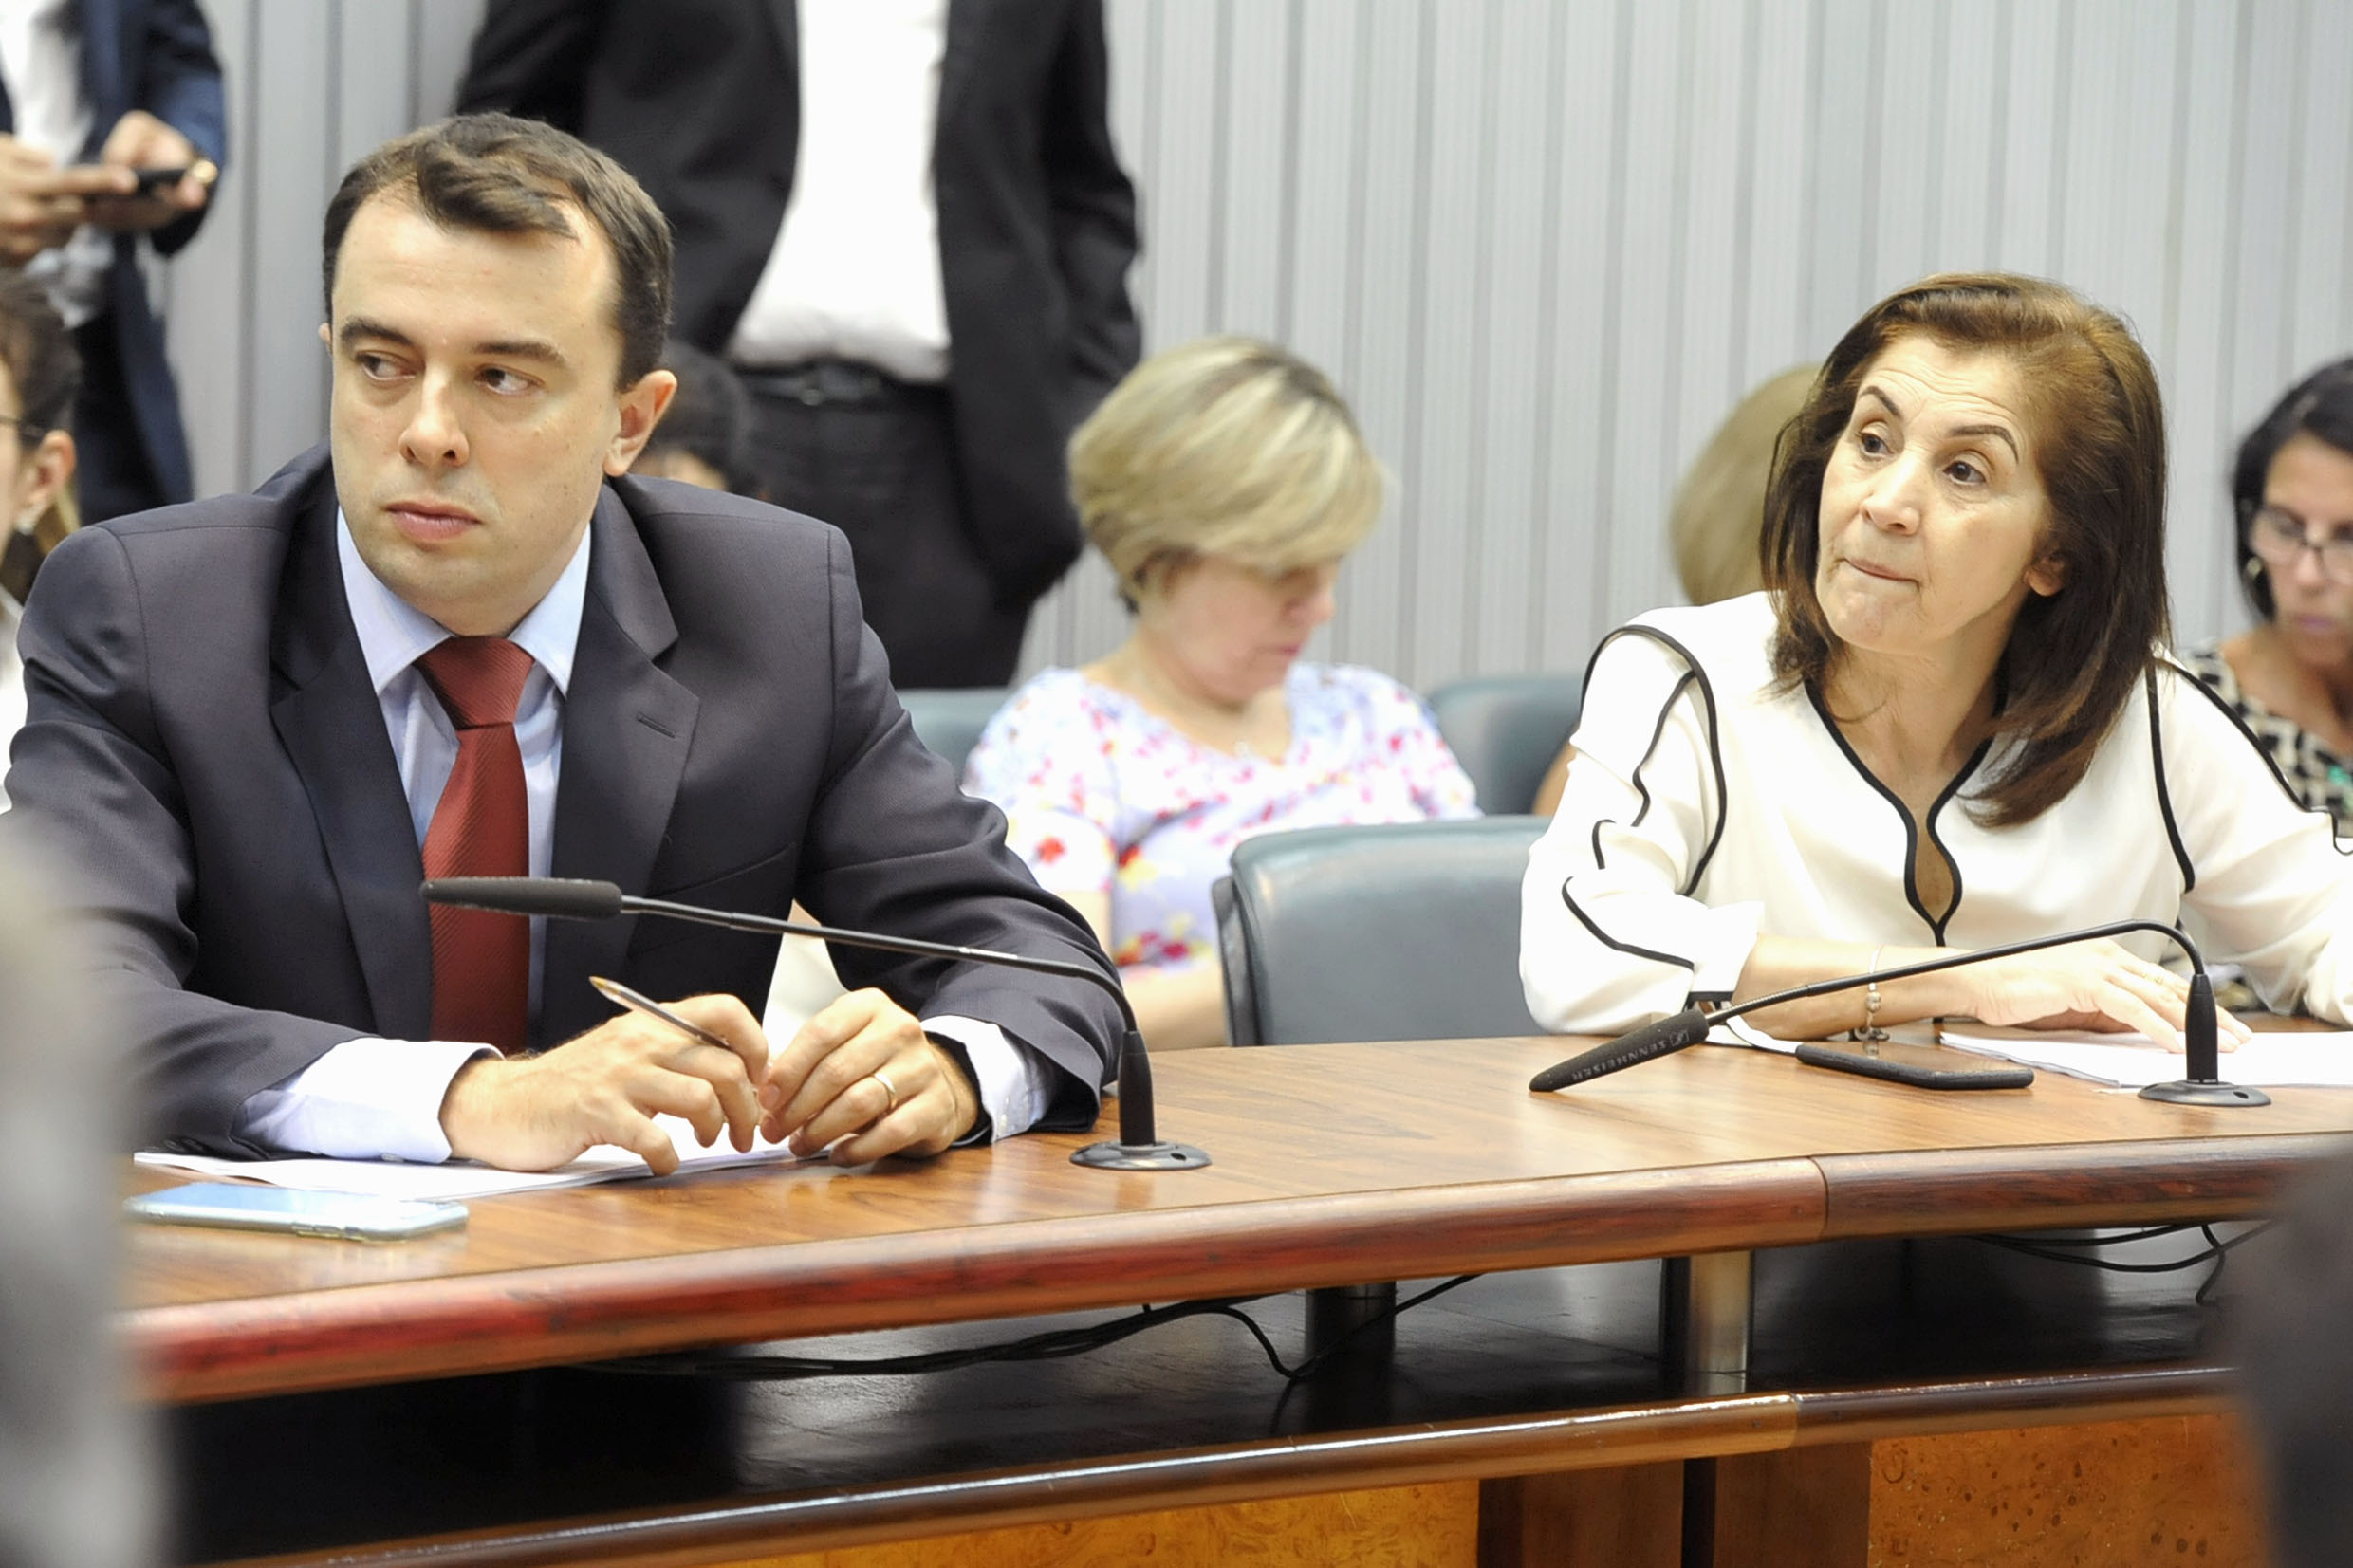 Parlamentares na comissão<a style='float:right' href='https://www3.al.sp.gov.br/repositorio/noticia/N-03-2019/fg231000.jpg' target=_blank><img src='/_img/material-file-download-white.png' width='14px' alt='Clique para baixar a imagem'></a>